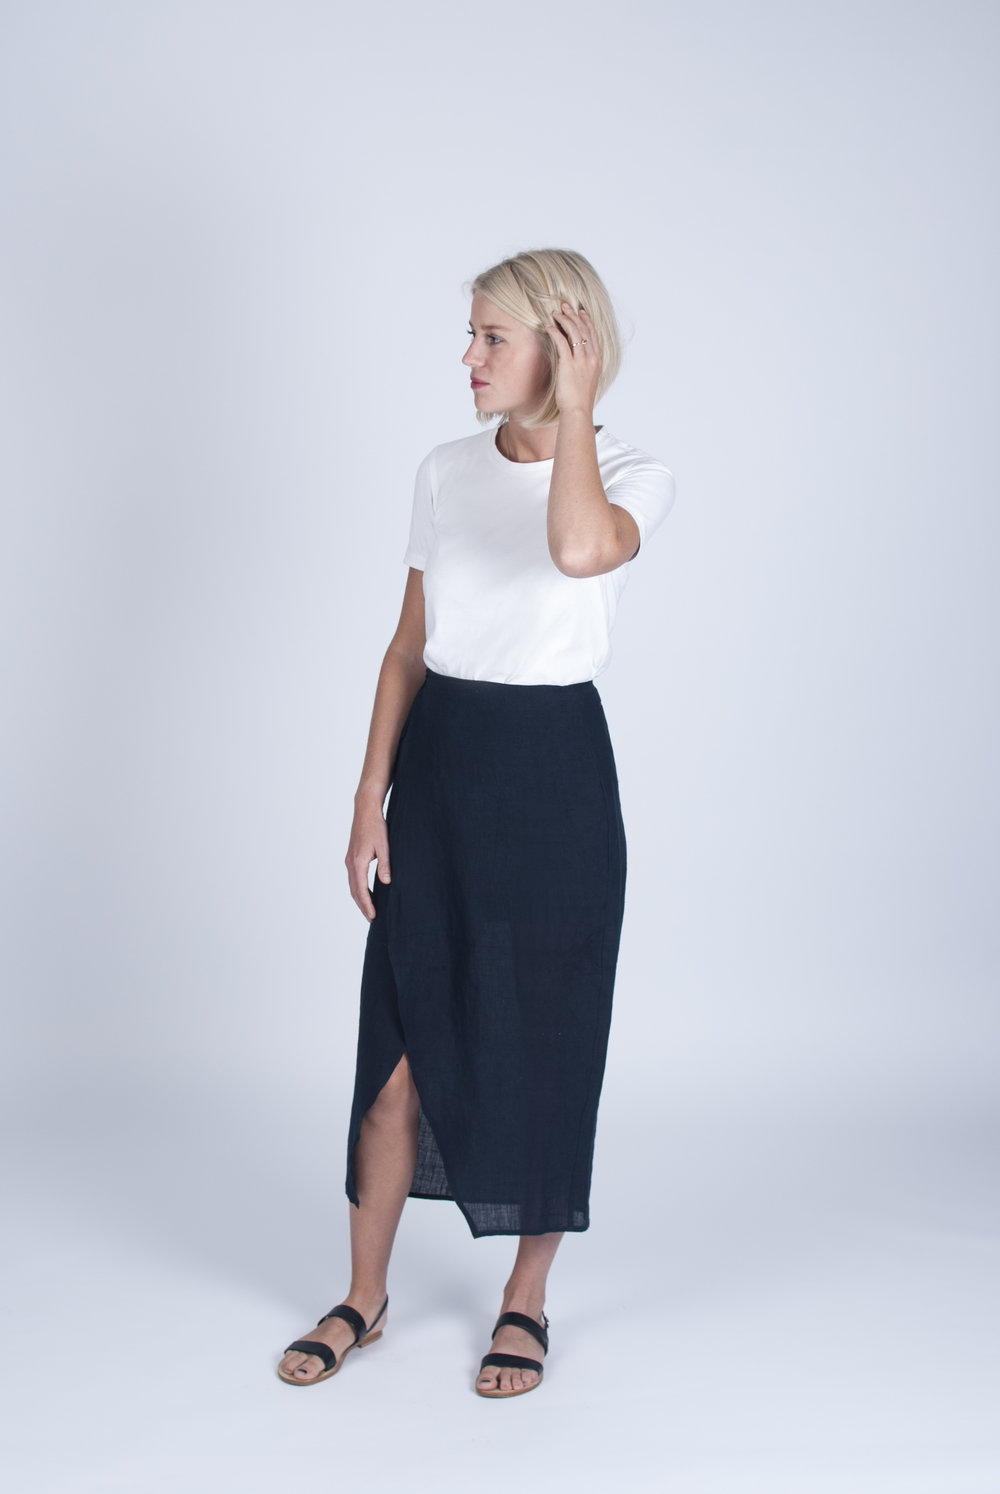 The  #026 skirt , styled with the  #023 t-shirt .